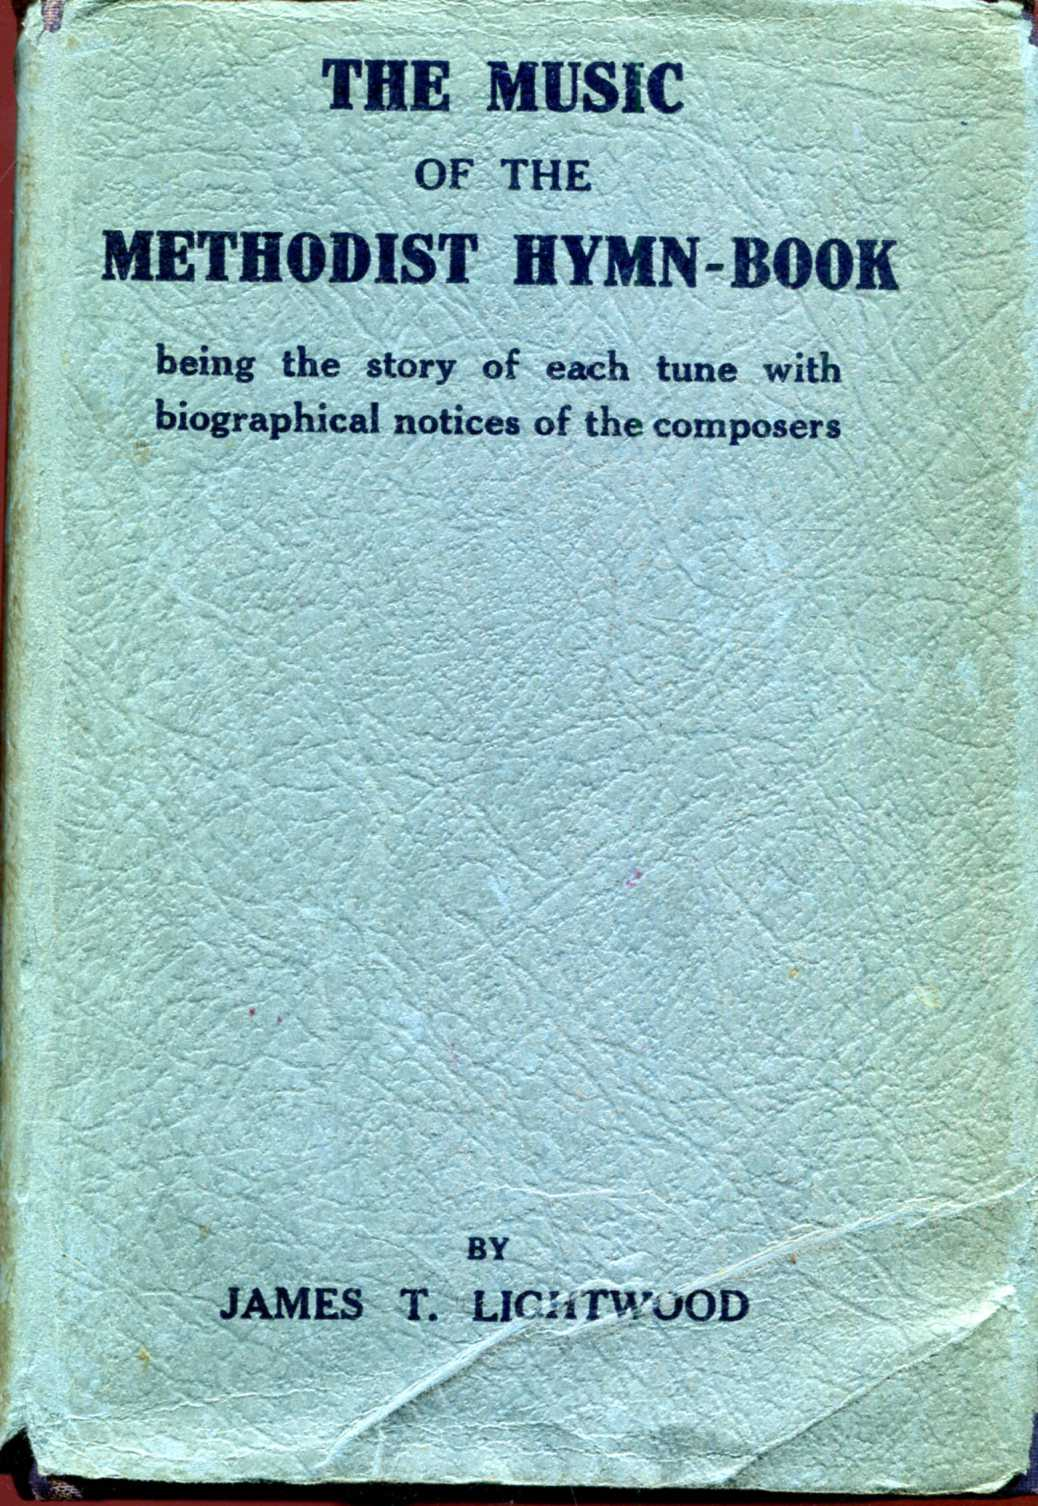 Image for The Music of the Methodist Hymn-Book, being the story of each tune with biographical notices of the composers